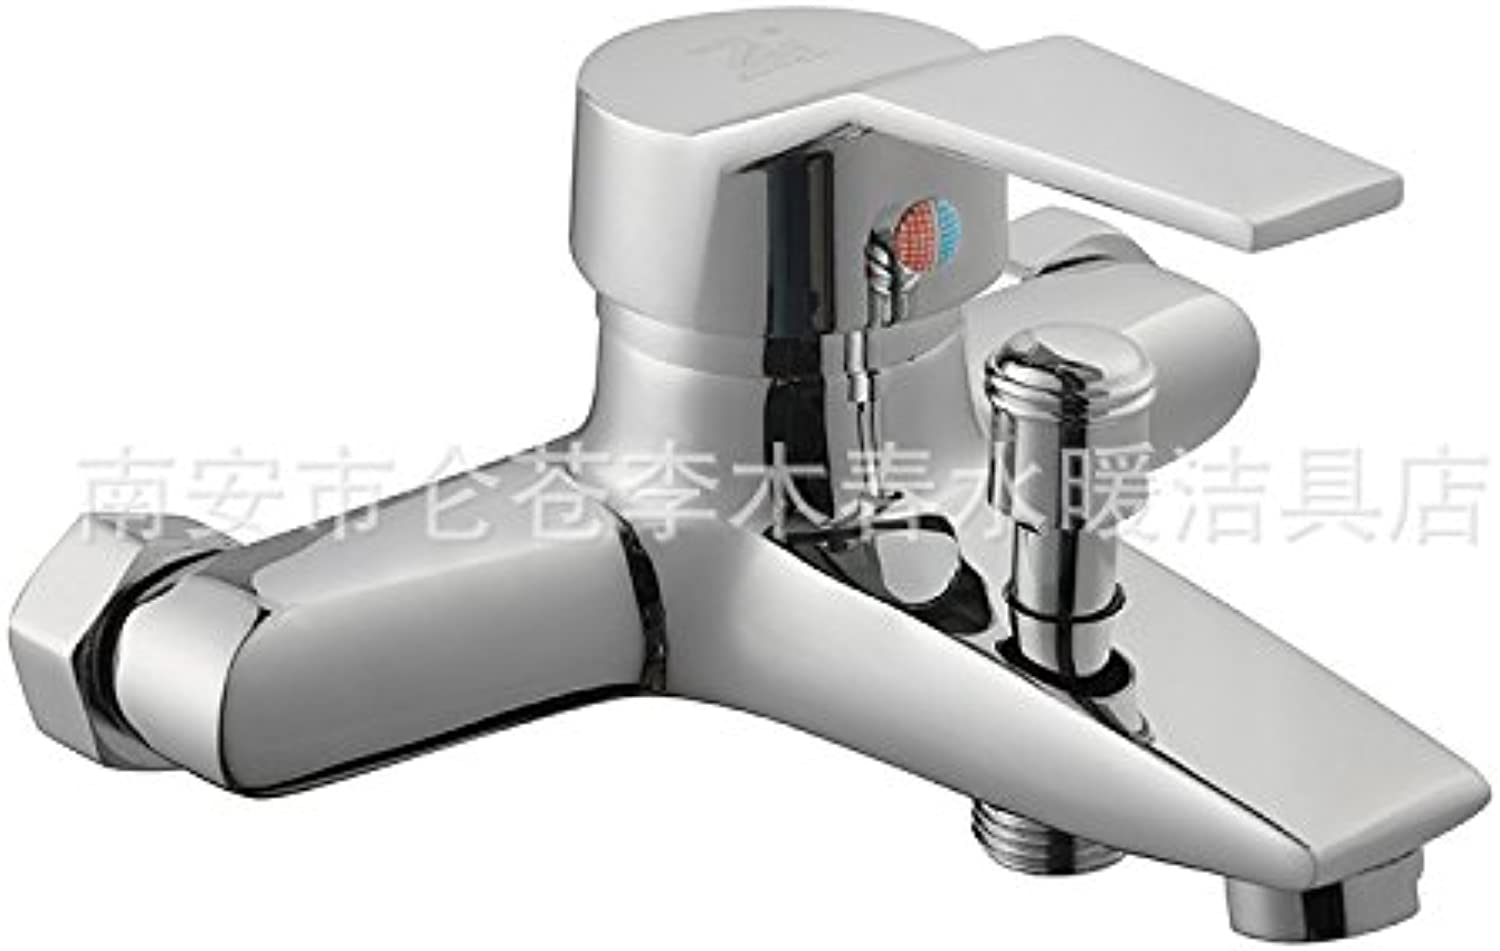 Faucet, Hot and Cold Washbasin, Three Hole Bathtub, Faucet, Tap, Household Faucet.